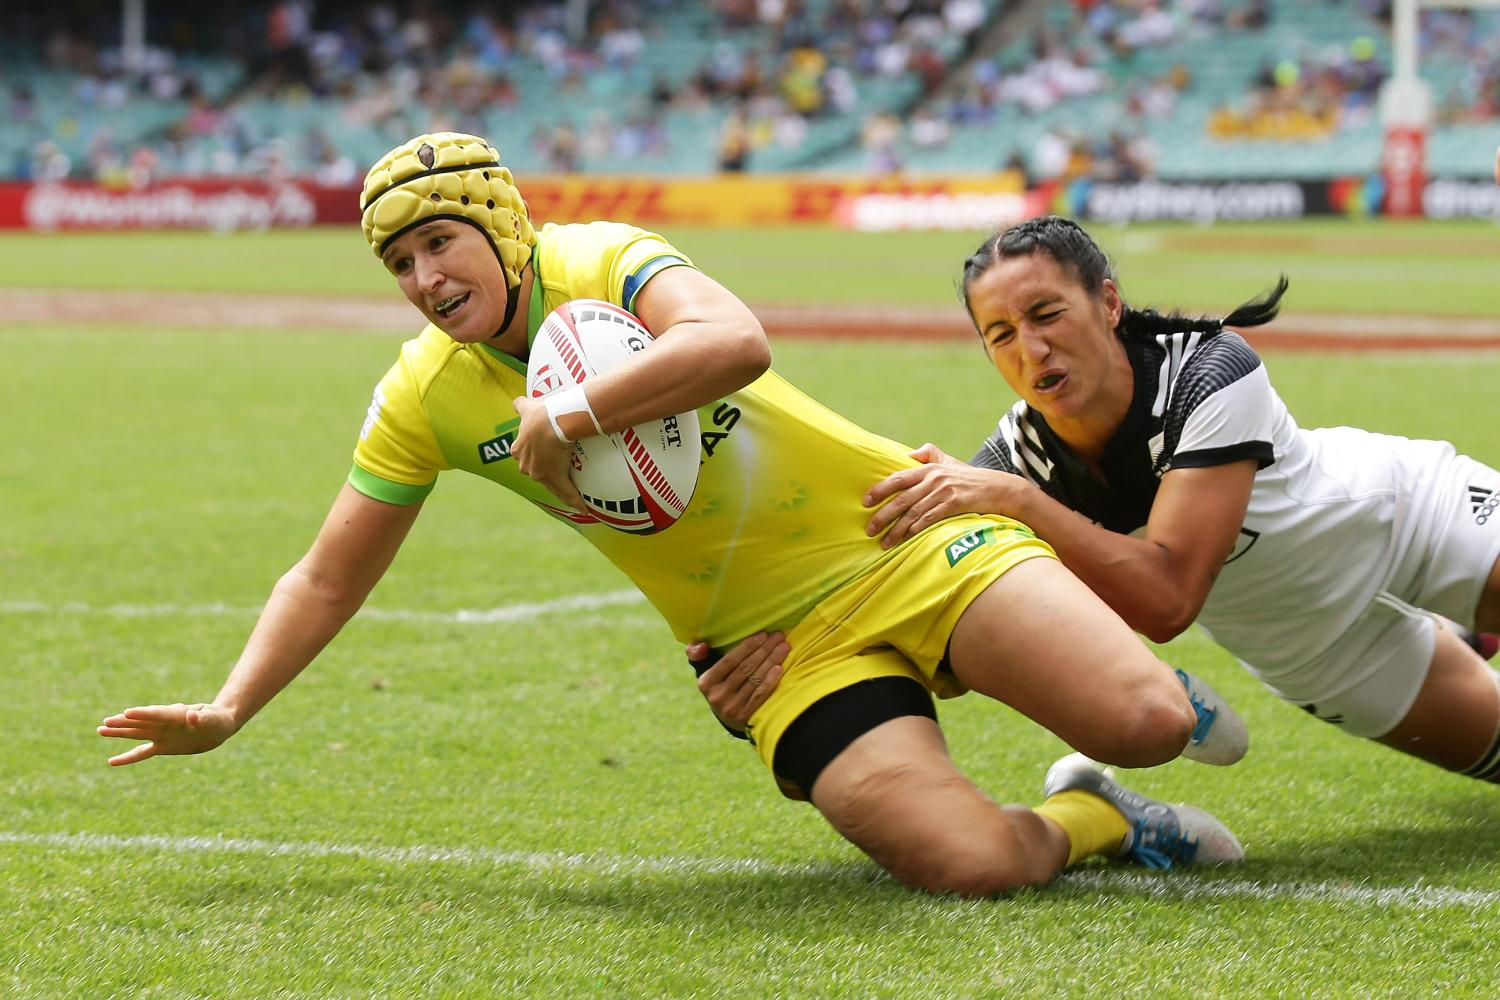 HSBC World Rugby Women's Sevens Series 2018 - Sydney Day 3